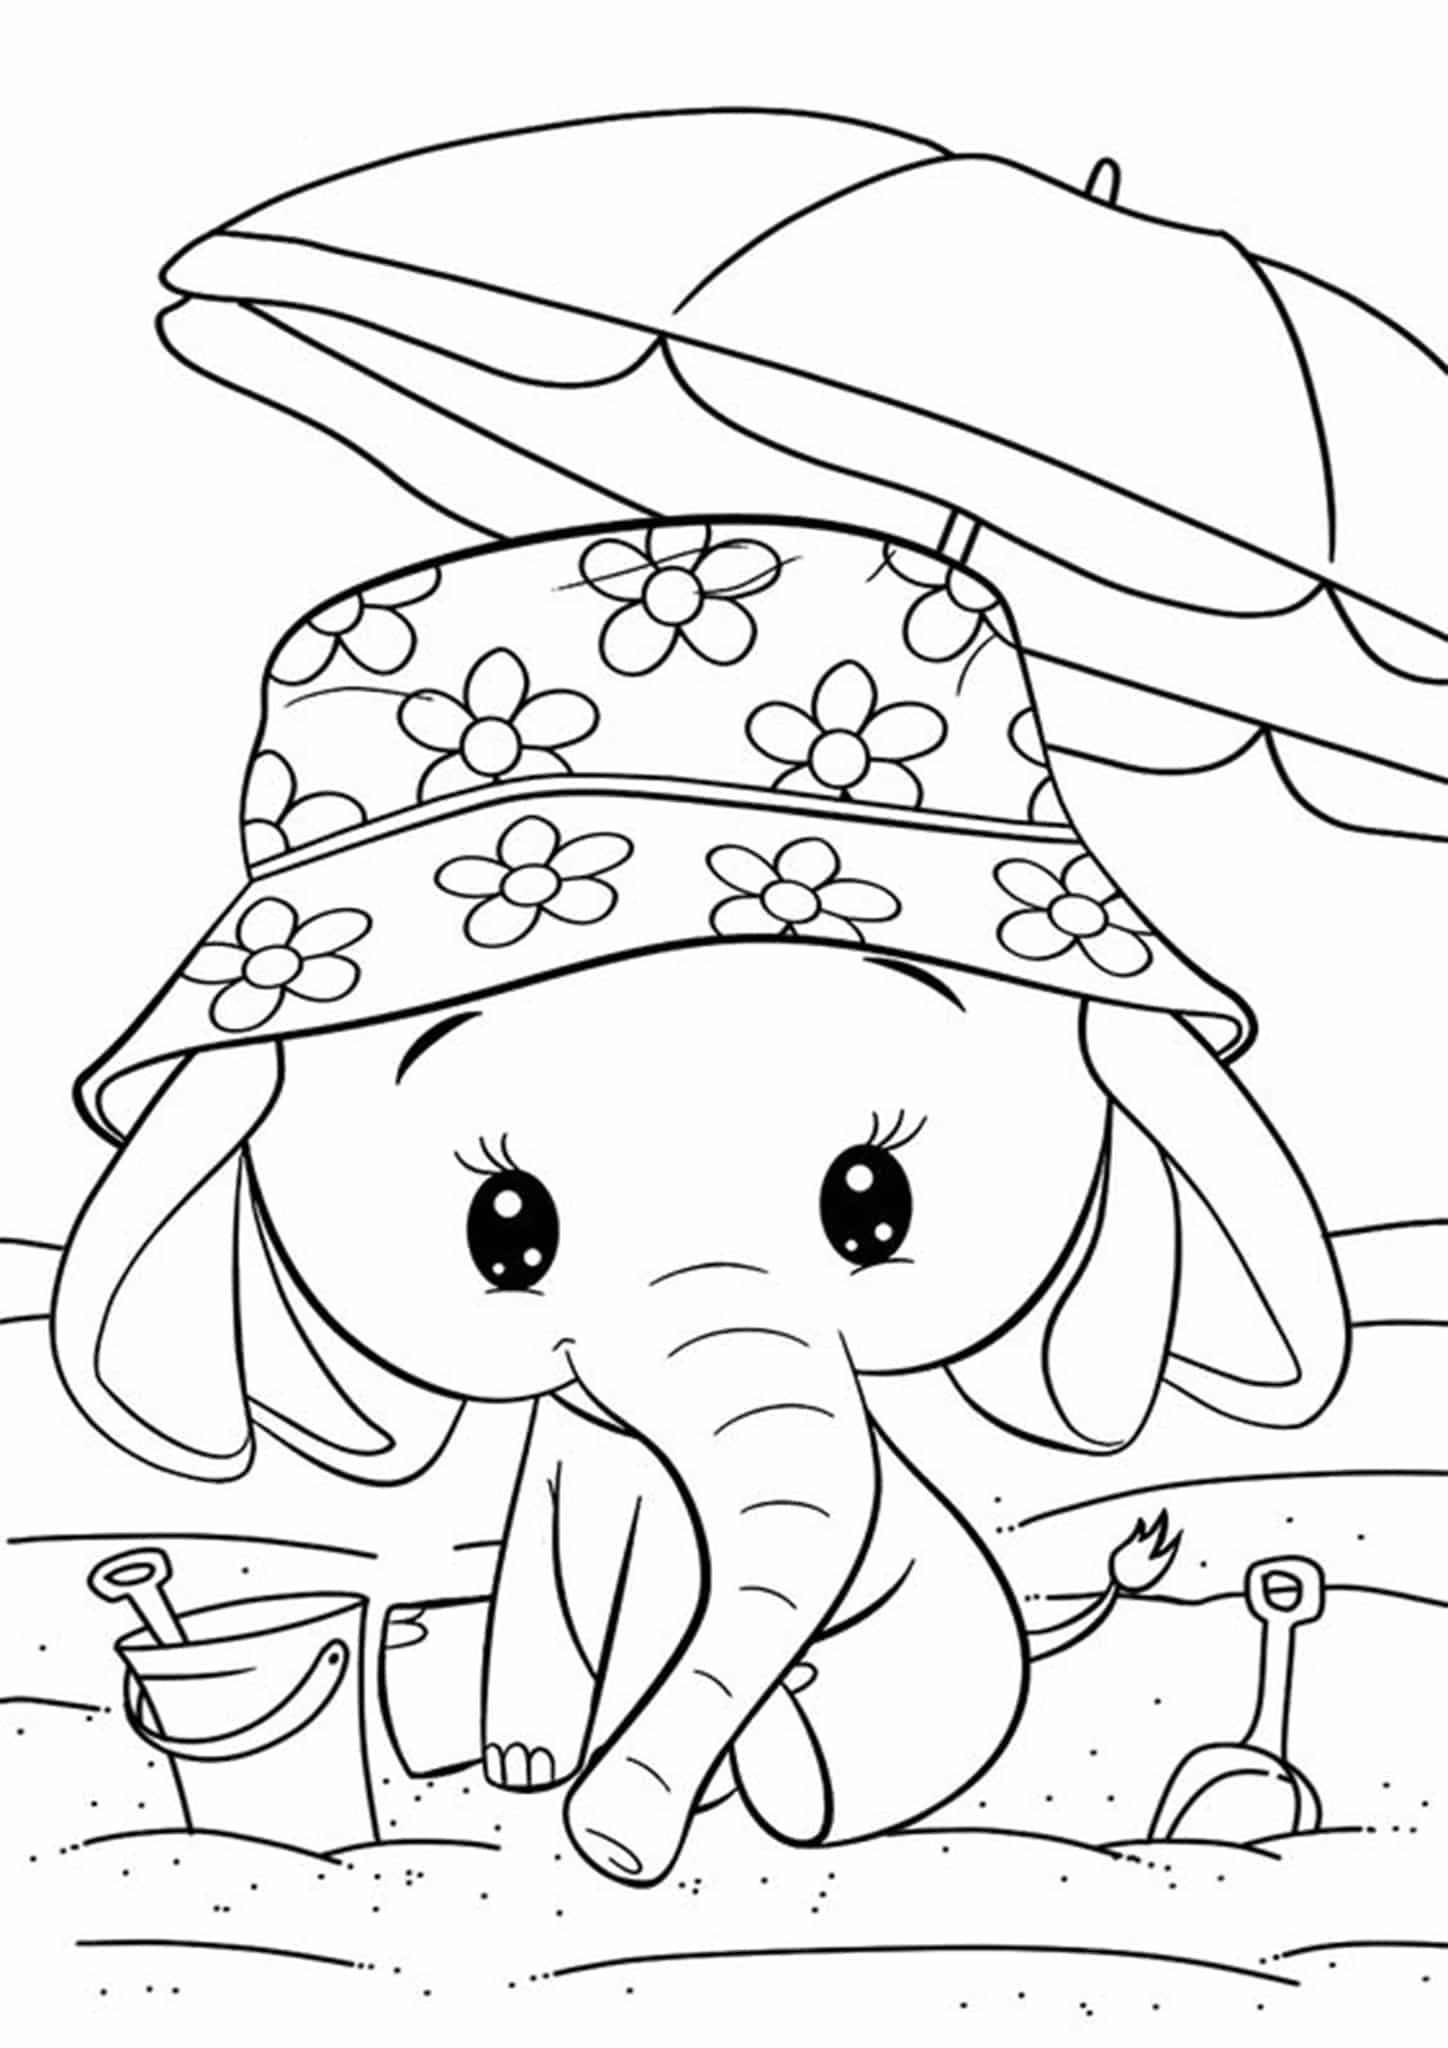 simple elephant coloring page free elephant coloring pages page coloring simple elephant